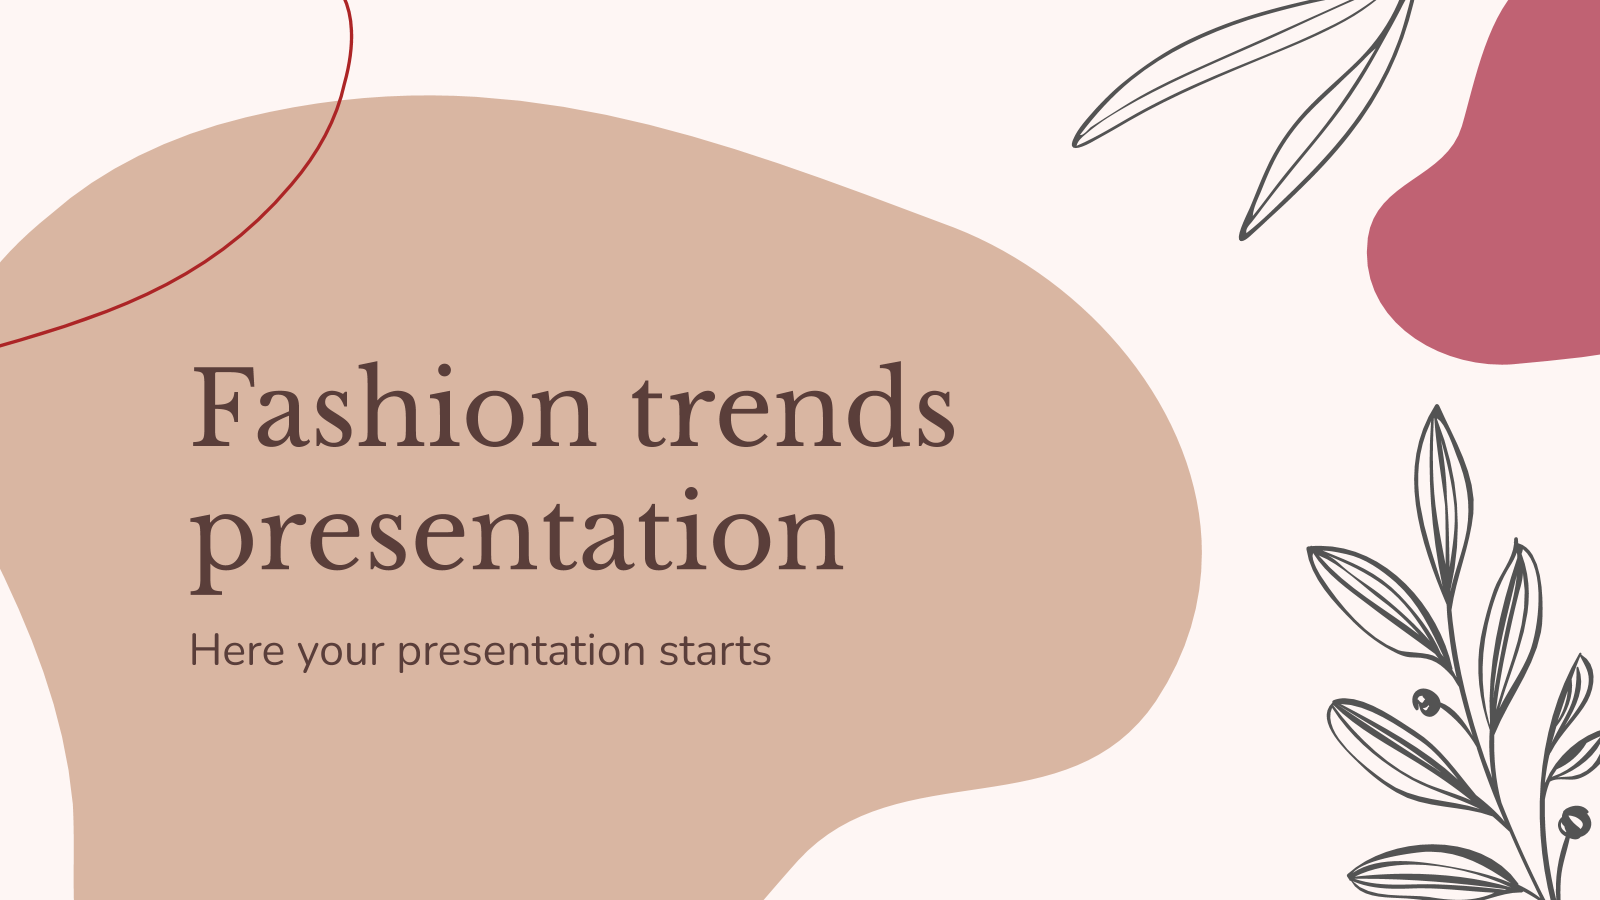 Fashion trends presentation presentation template